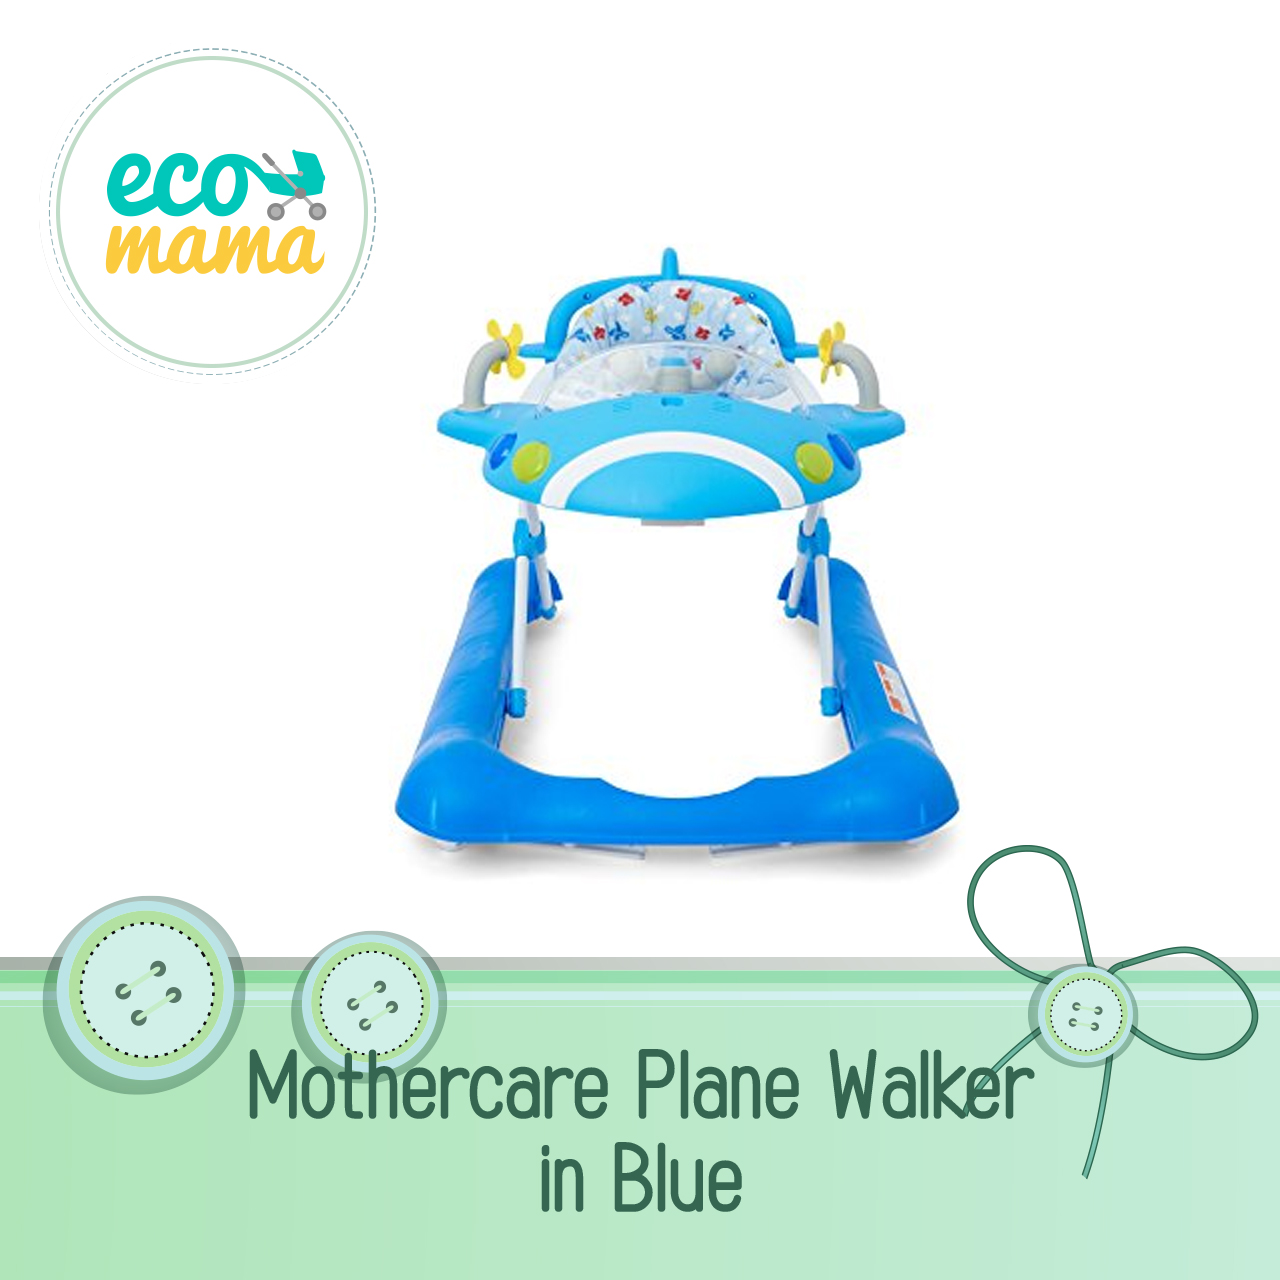 Mothercare Plane Walker in Blue